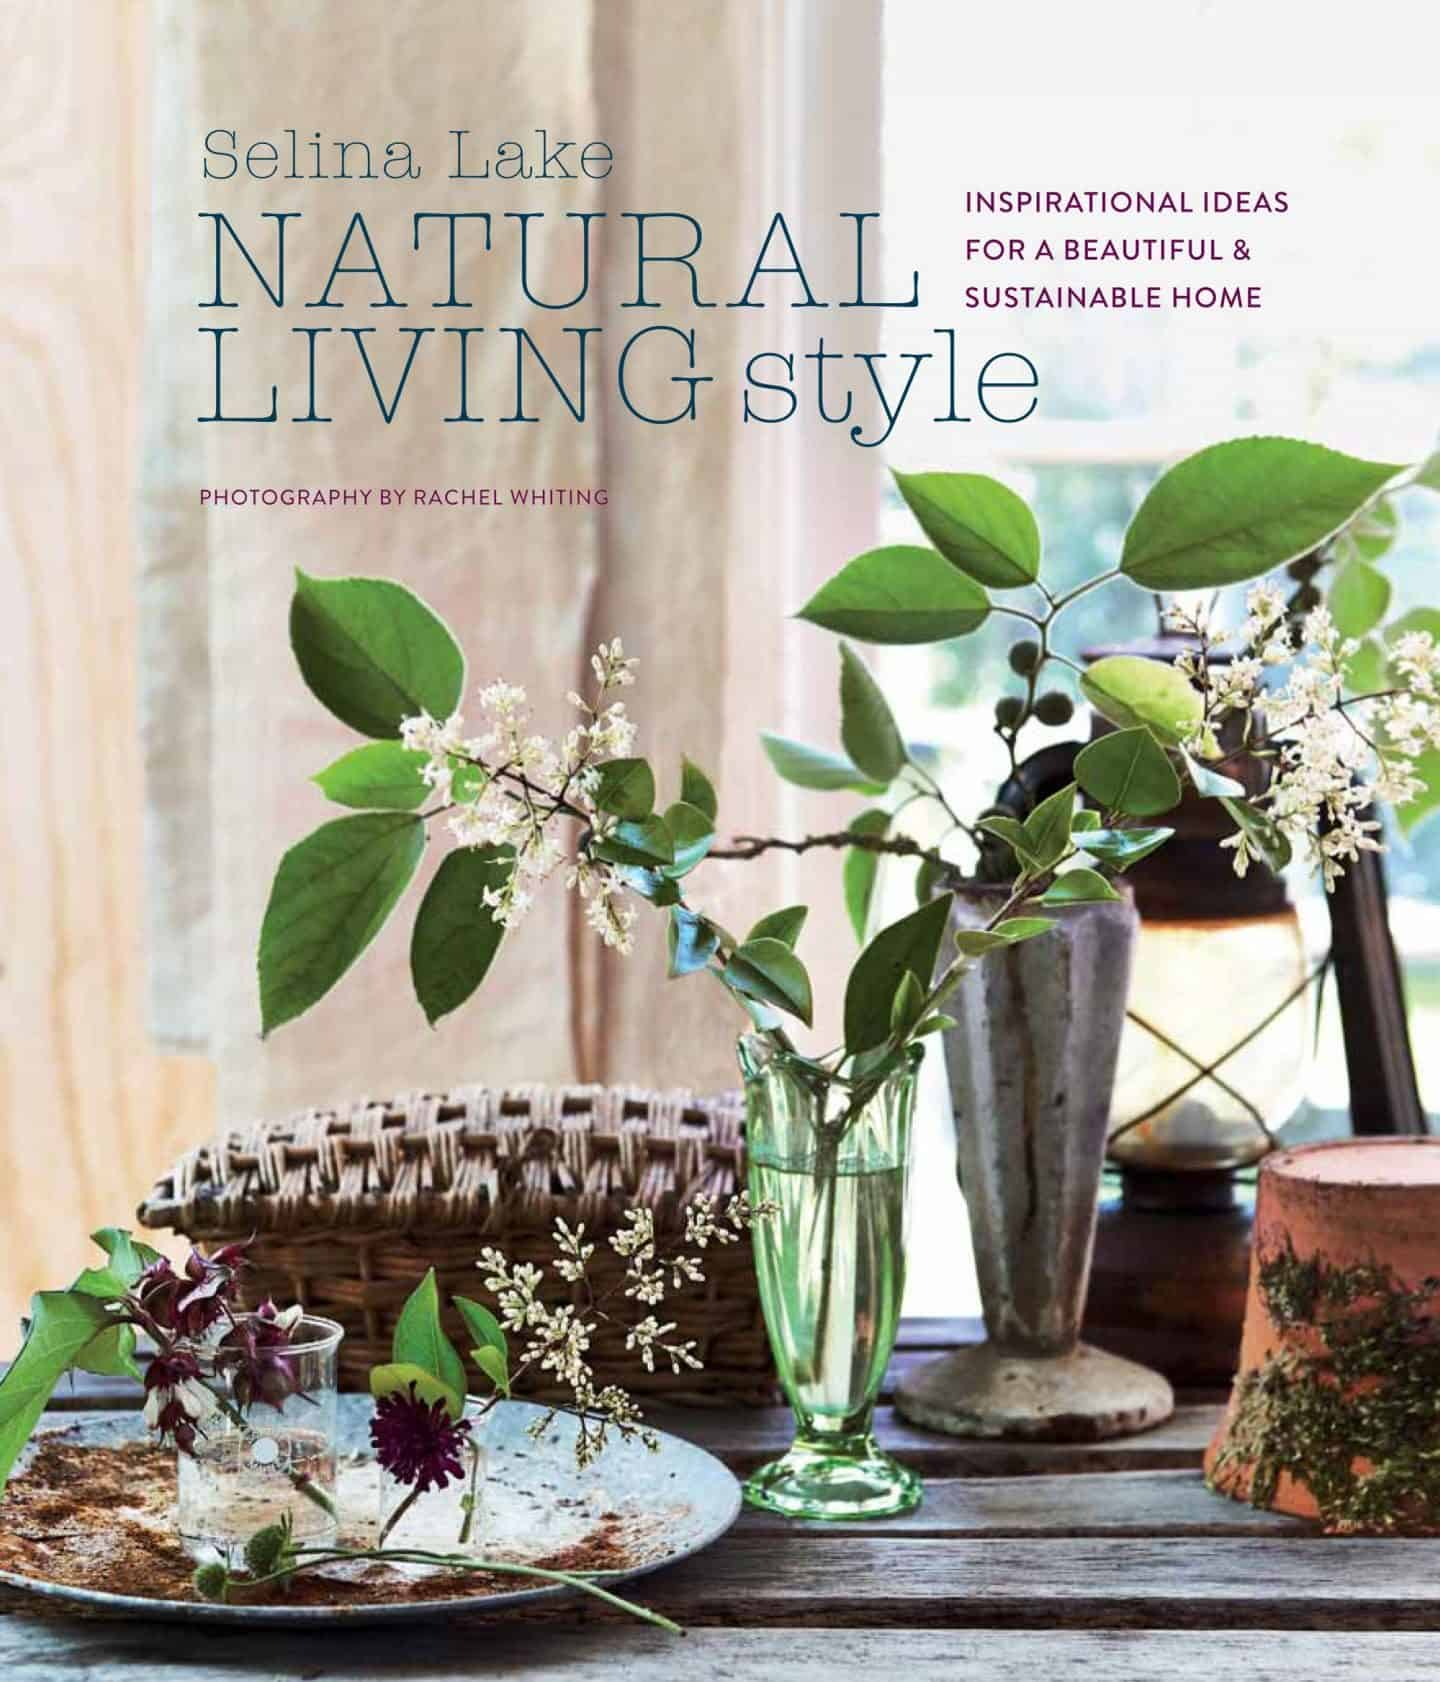 Natural Living Style by Selina Lake -book cover